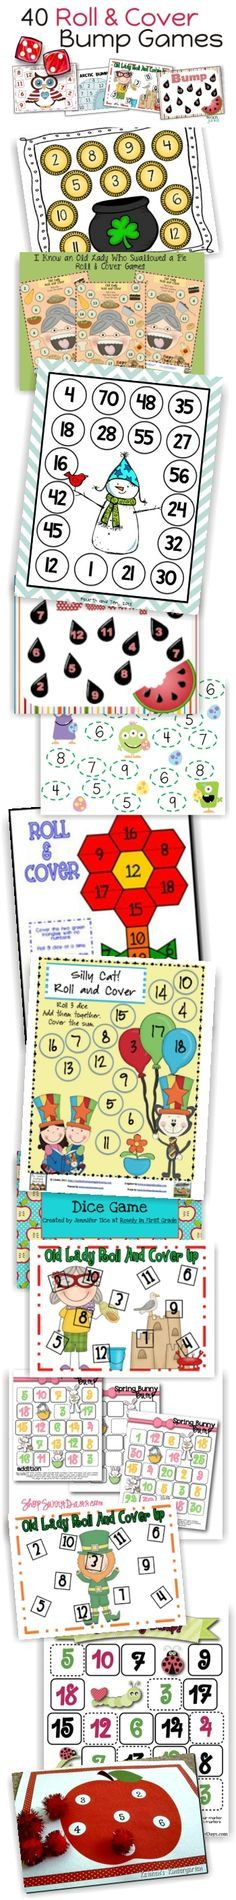 Best 25 cool math games ideas on pinterest cool math for Cool christmas math games